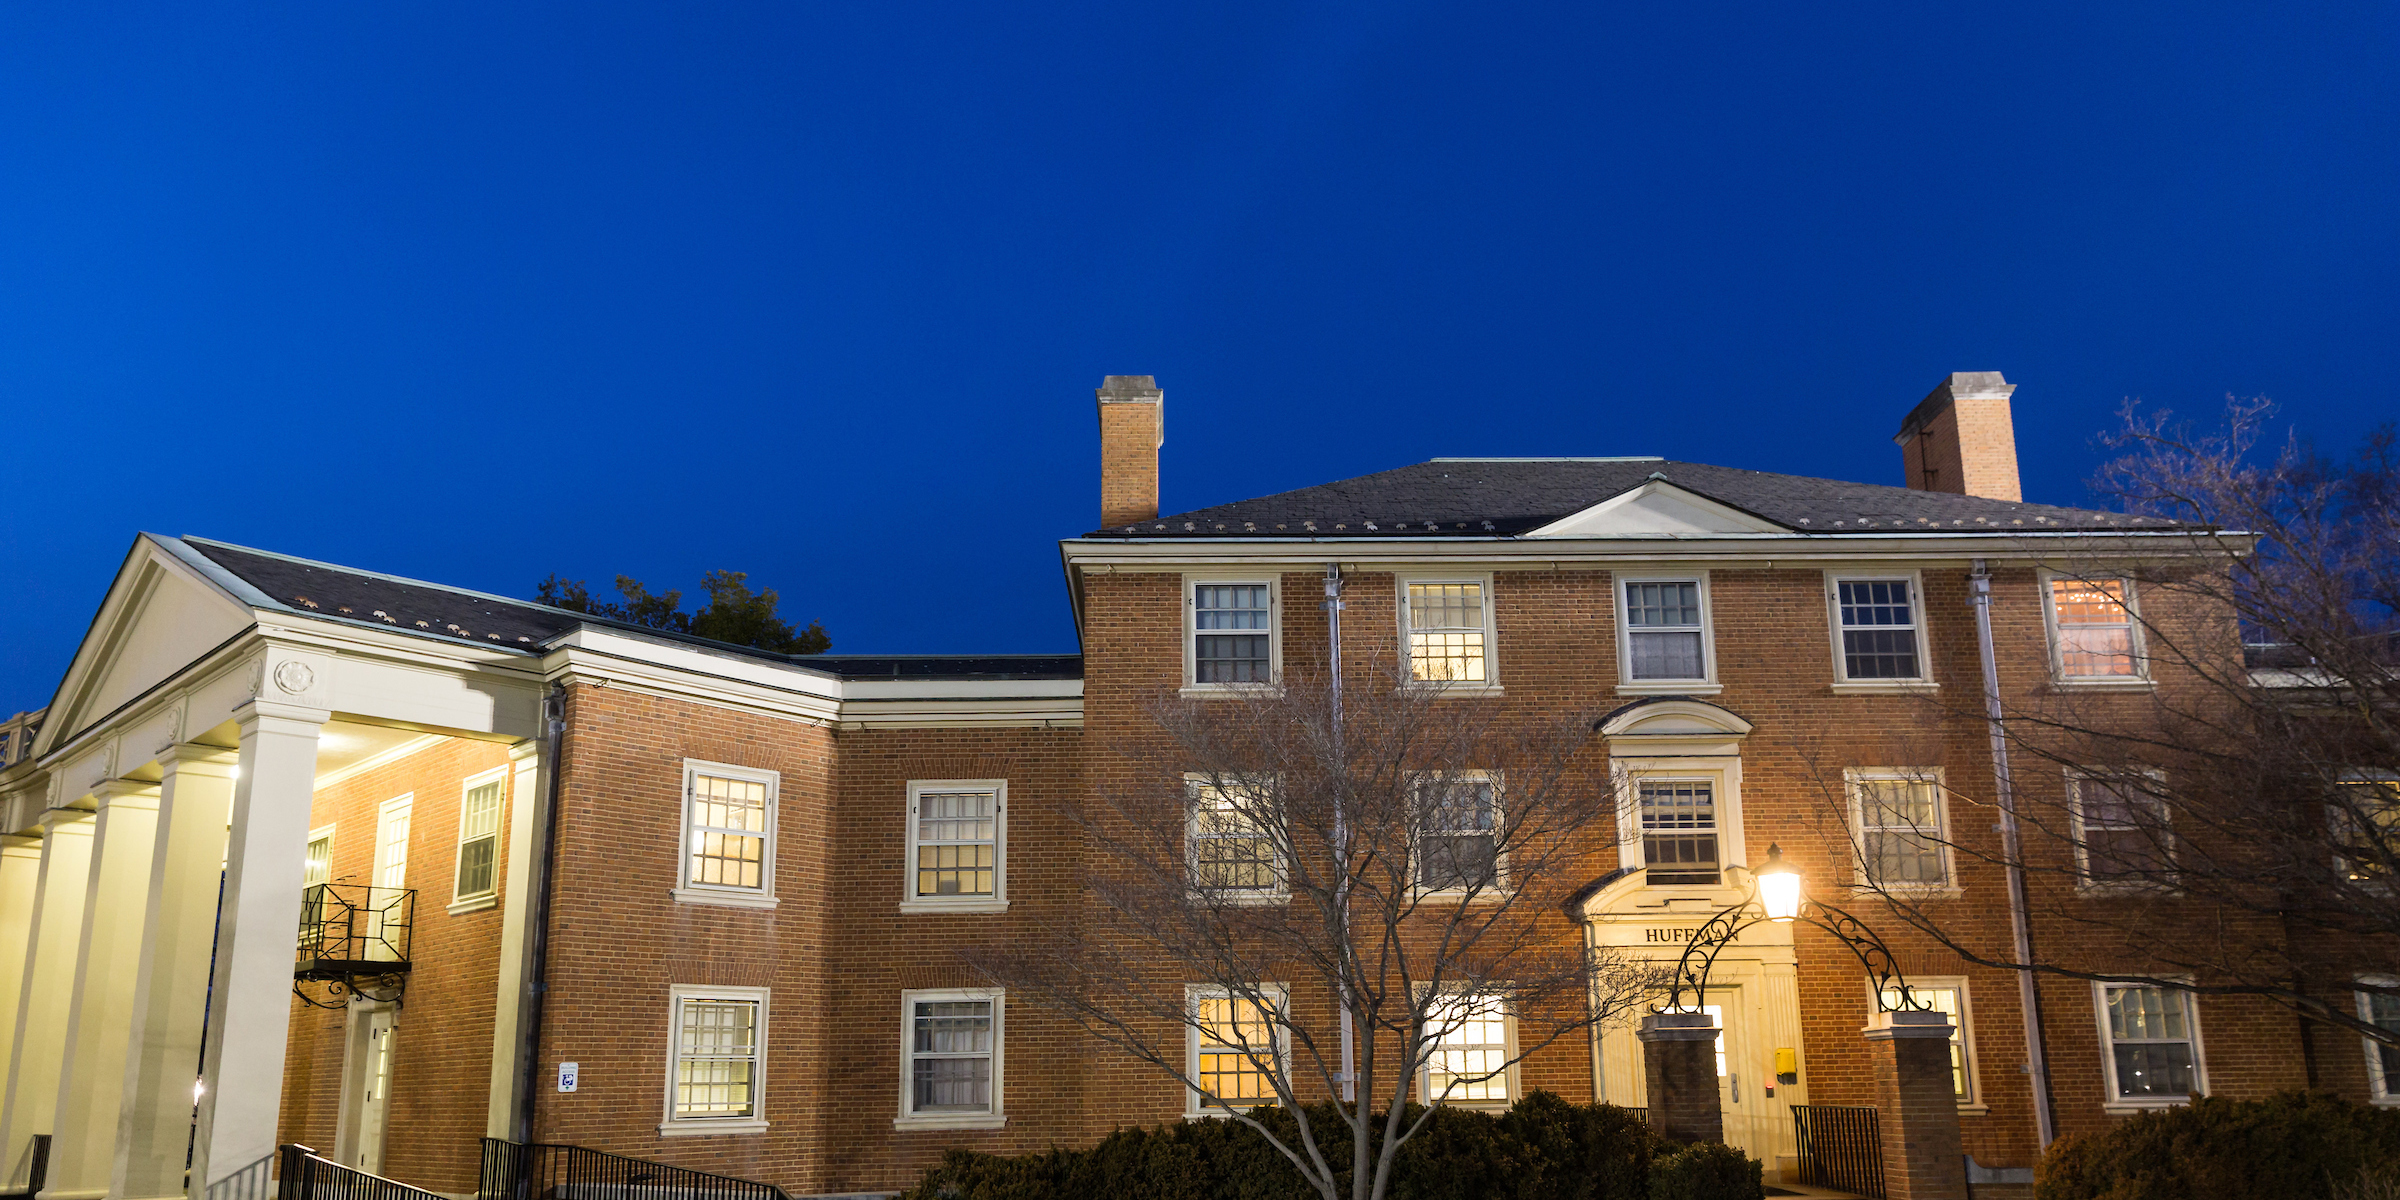 Huffman residence hall at night